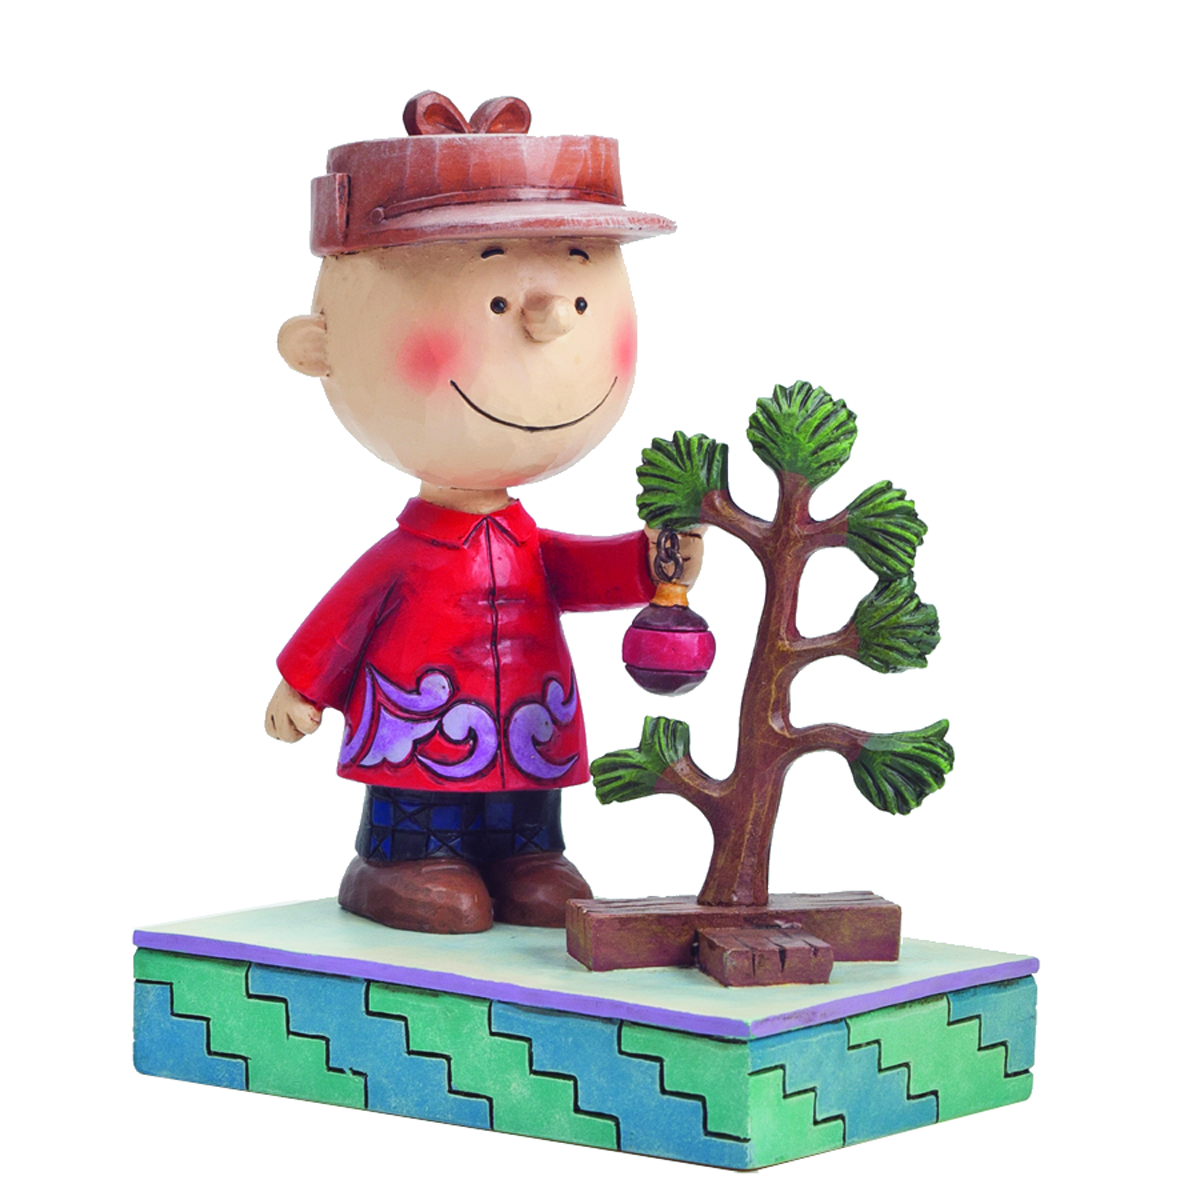 PEANUTS TRADITIONS CHARLIE BROWN W/TREE FIG